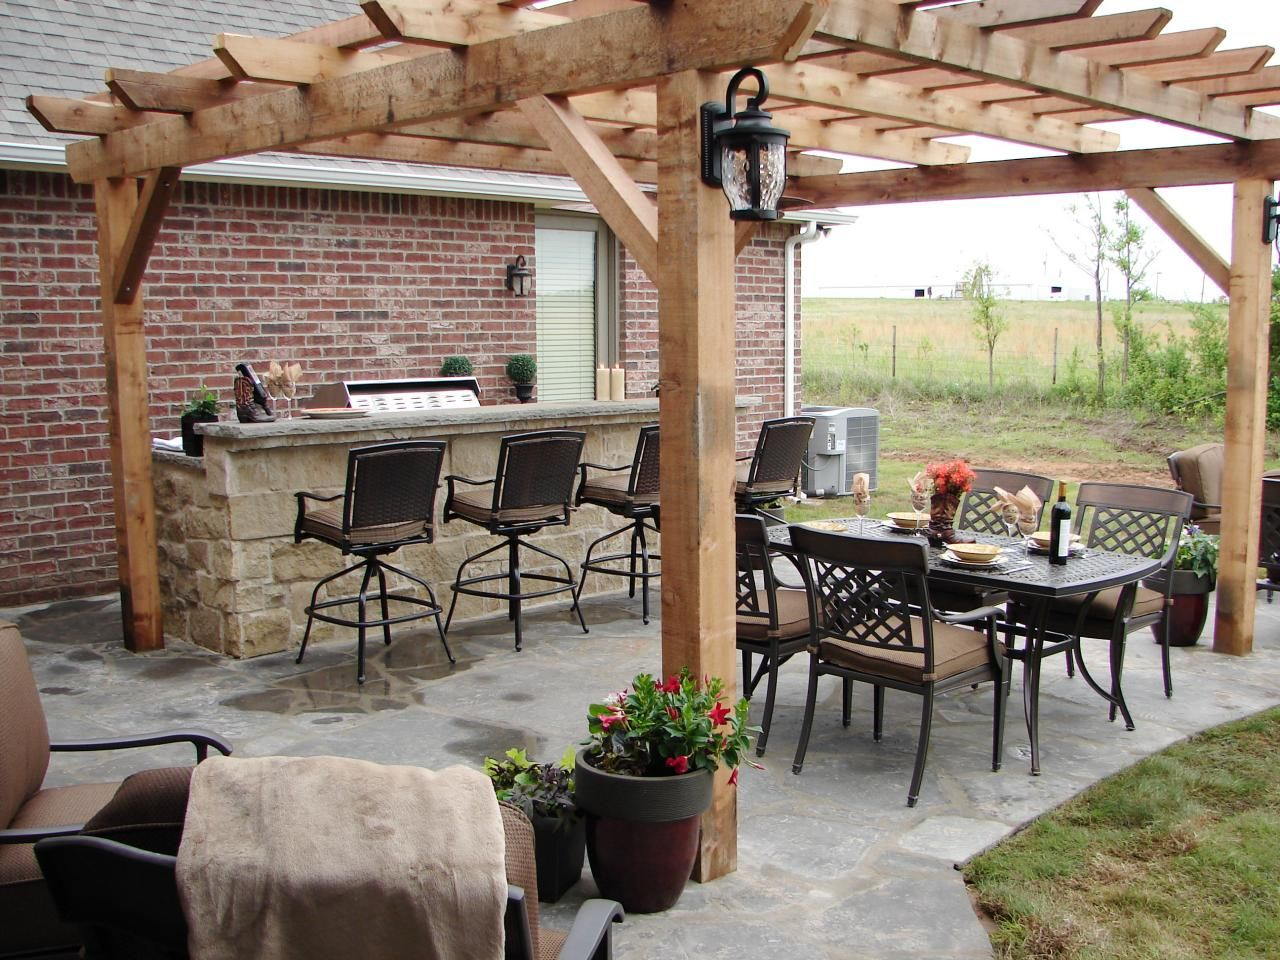 20 Outdoor Kitchens and Grilling Stations Hgtv, Outdoor